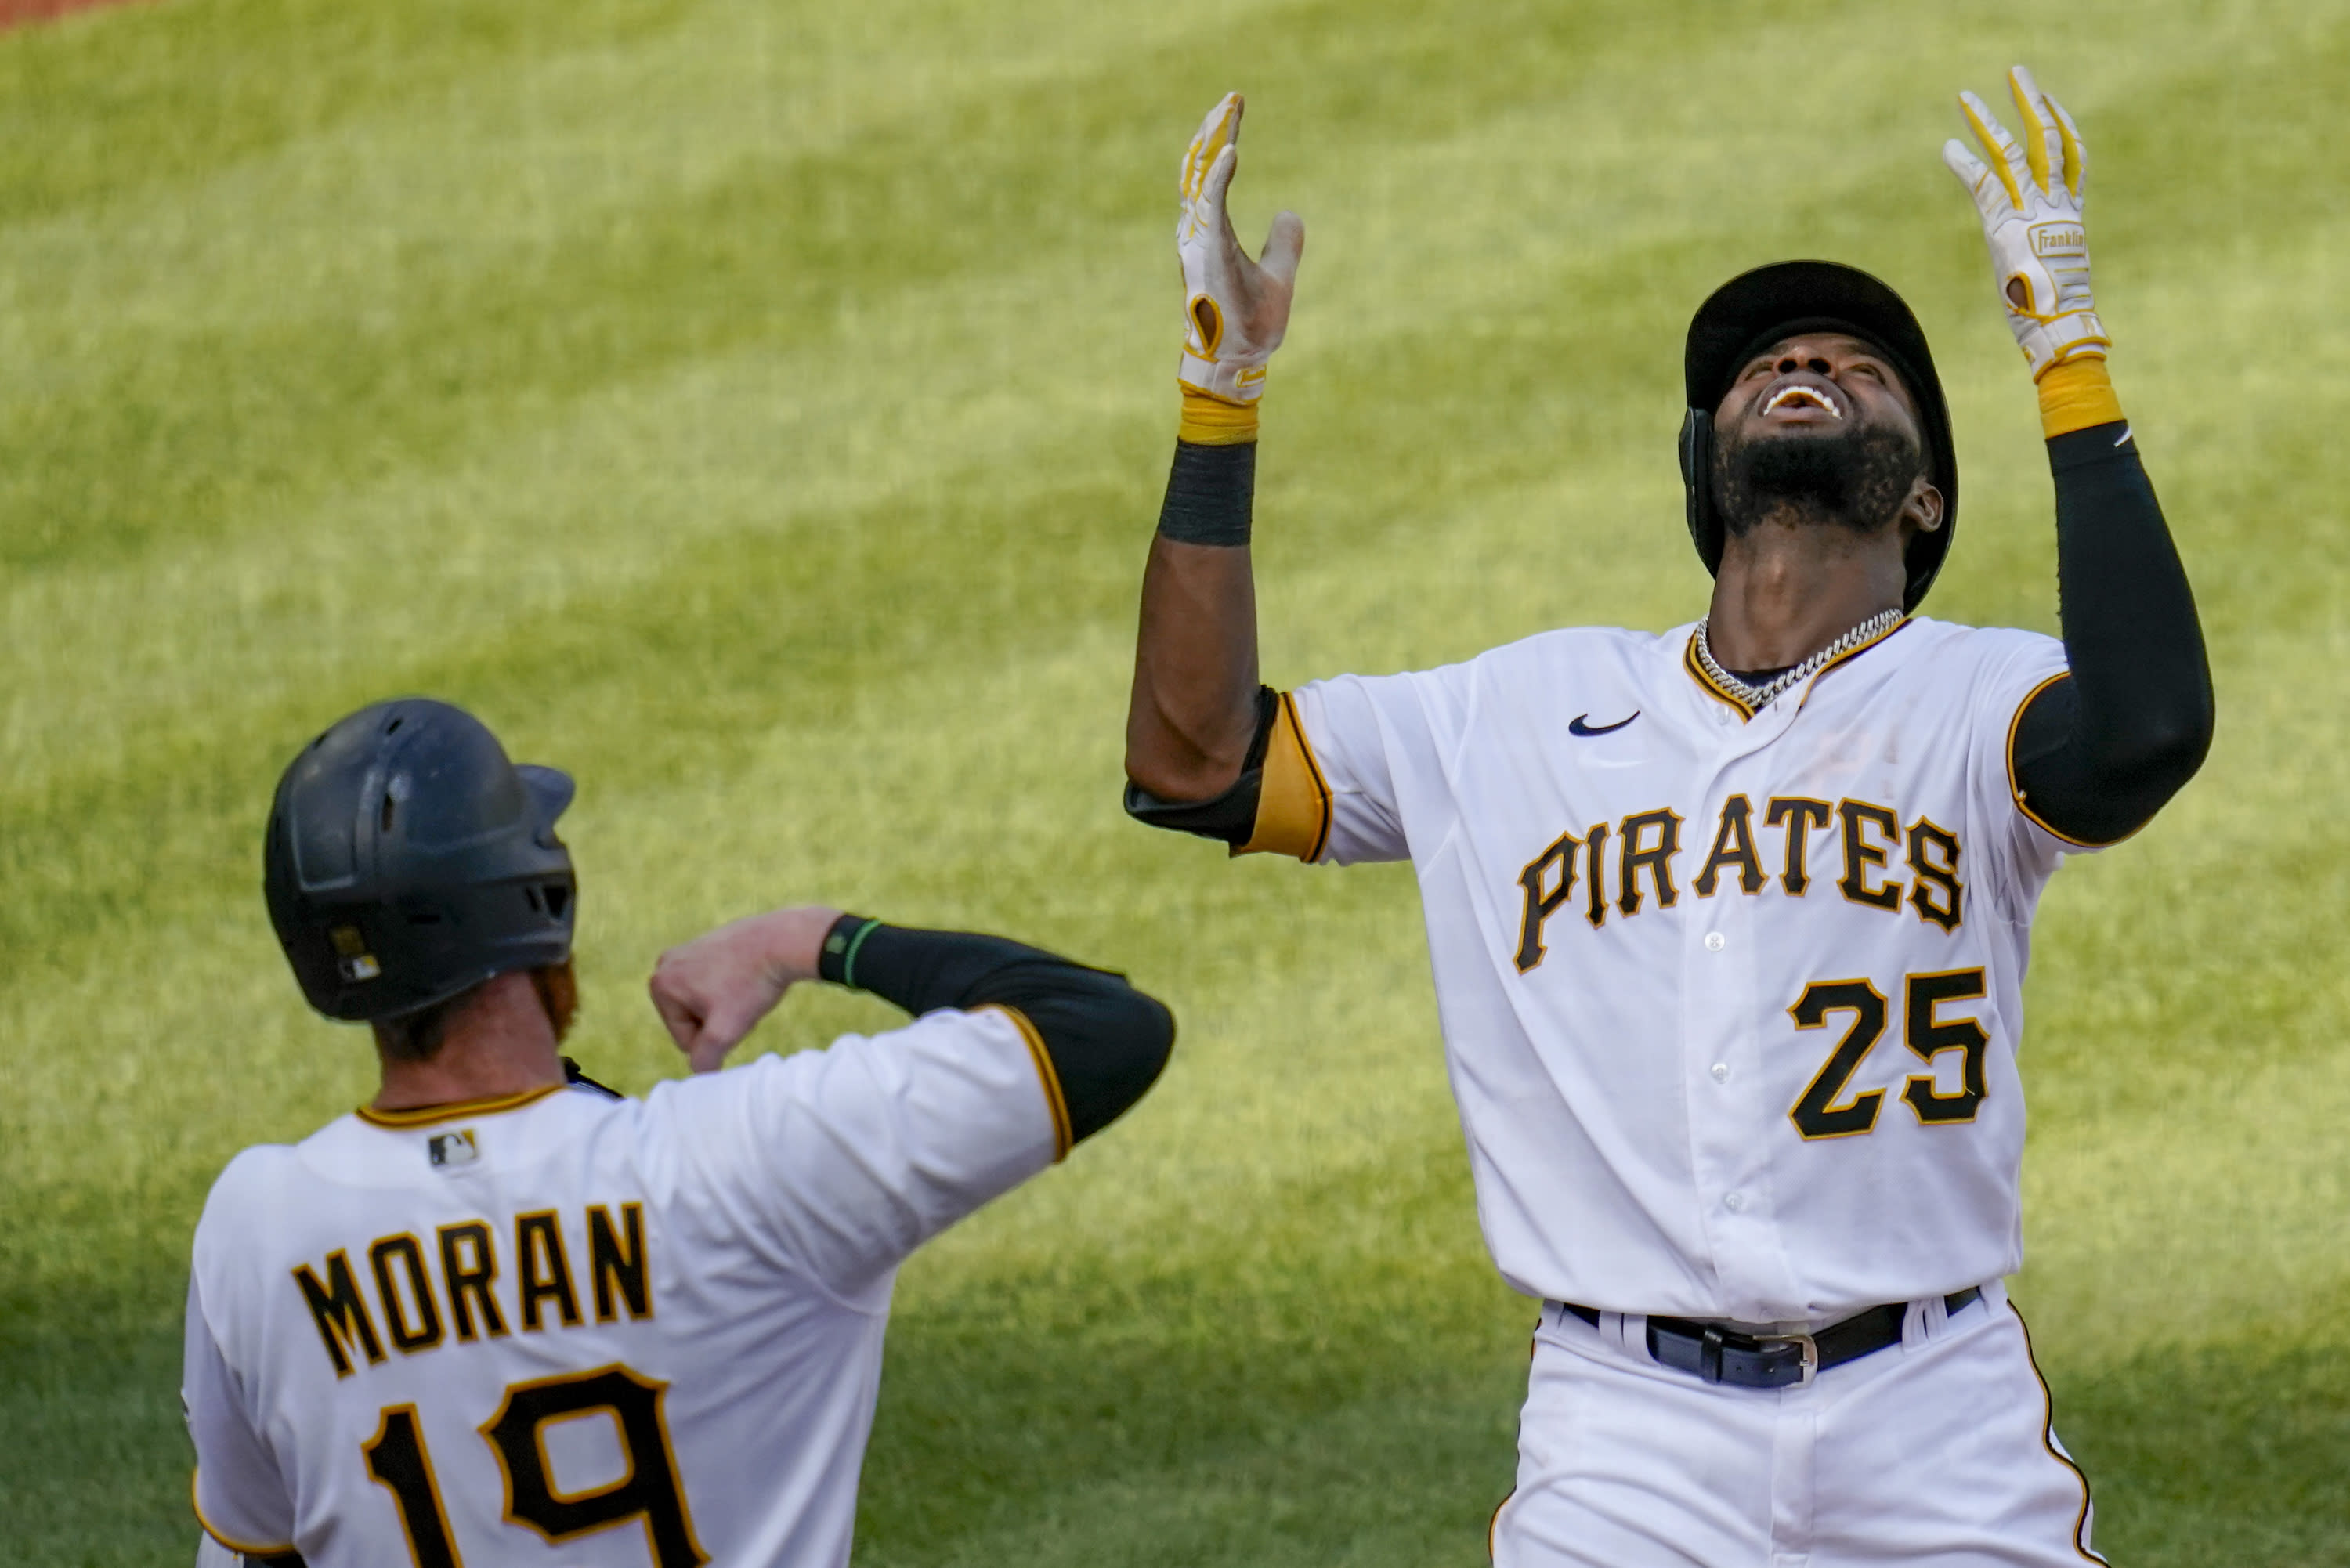 Pittsburgh Pirates' Gregory Polanco, right, celebrates with Colin Moran (19) after driving Moran in with a two-run home run against the Milwaukee Brewers in the fourth inning of a baseball game, Saturday, Aug. 22, 2020, in Pittsburgh. (AP Photo/Keith Srakocic)